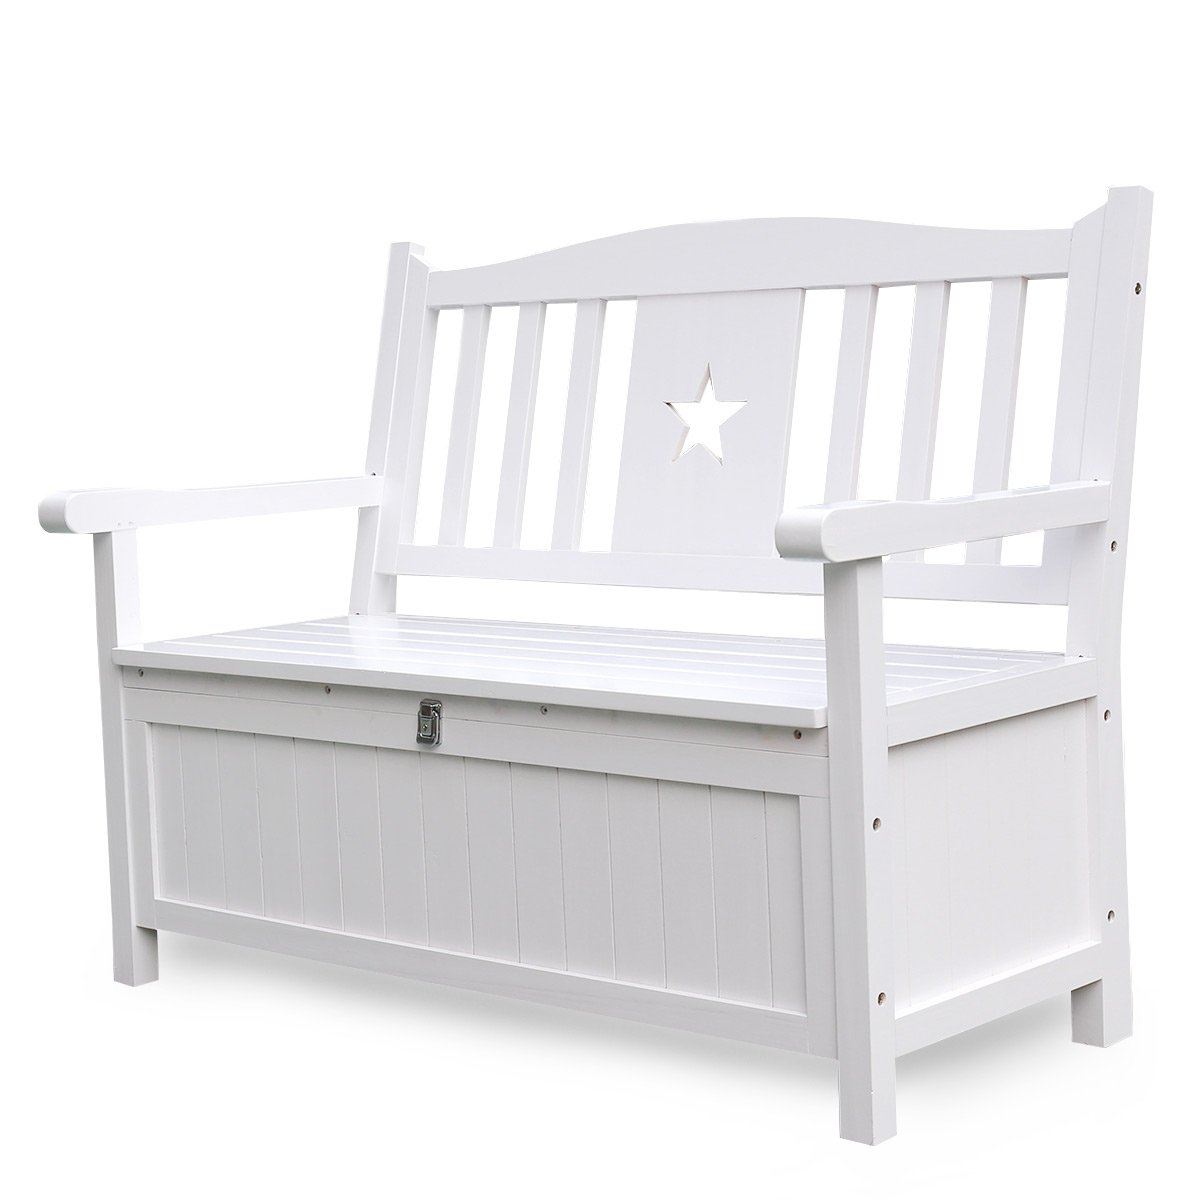 Songsen 4 Feet Wooden Storage Bench With Arm And Back Garden Storage Bench Chest Indoor Shoe Cabinet Chair, White